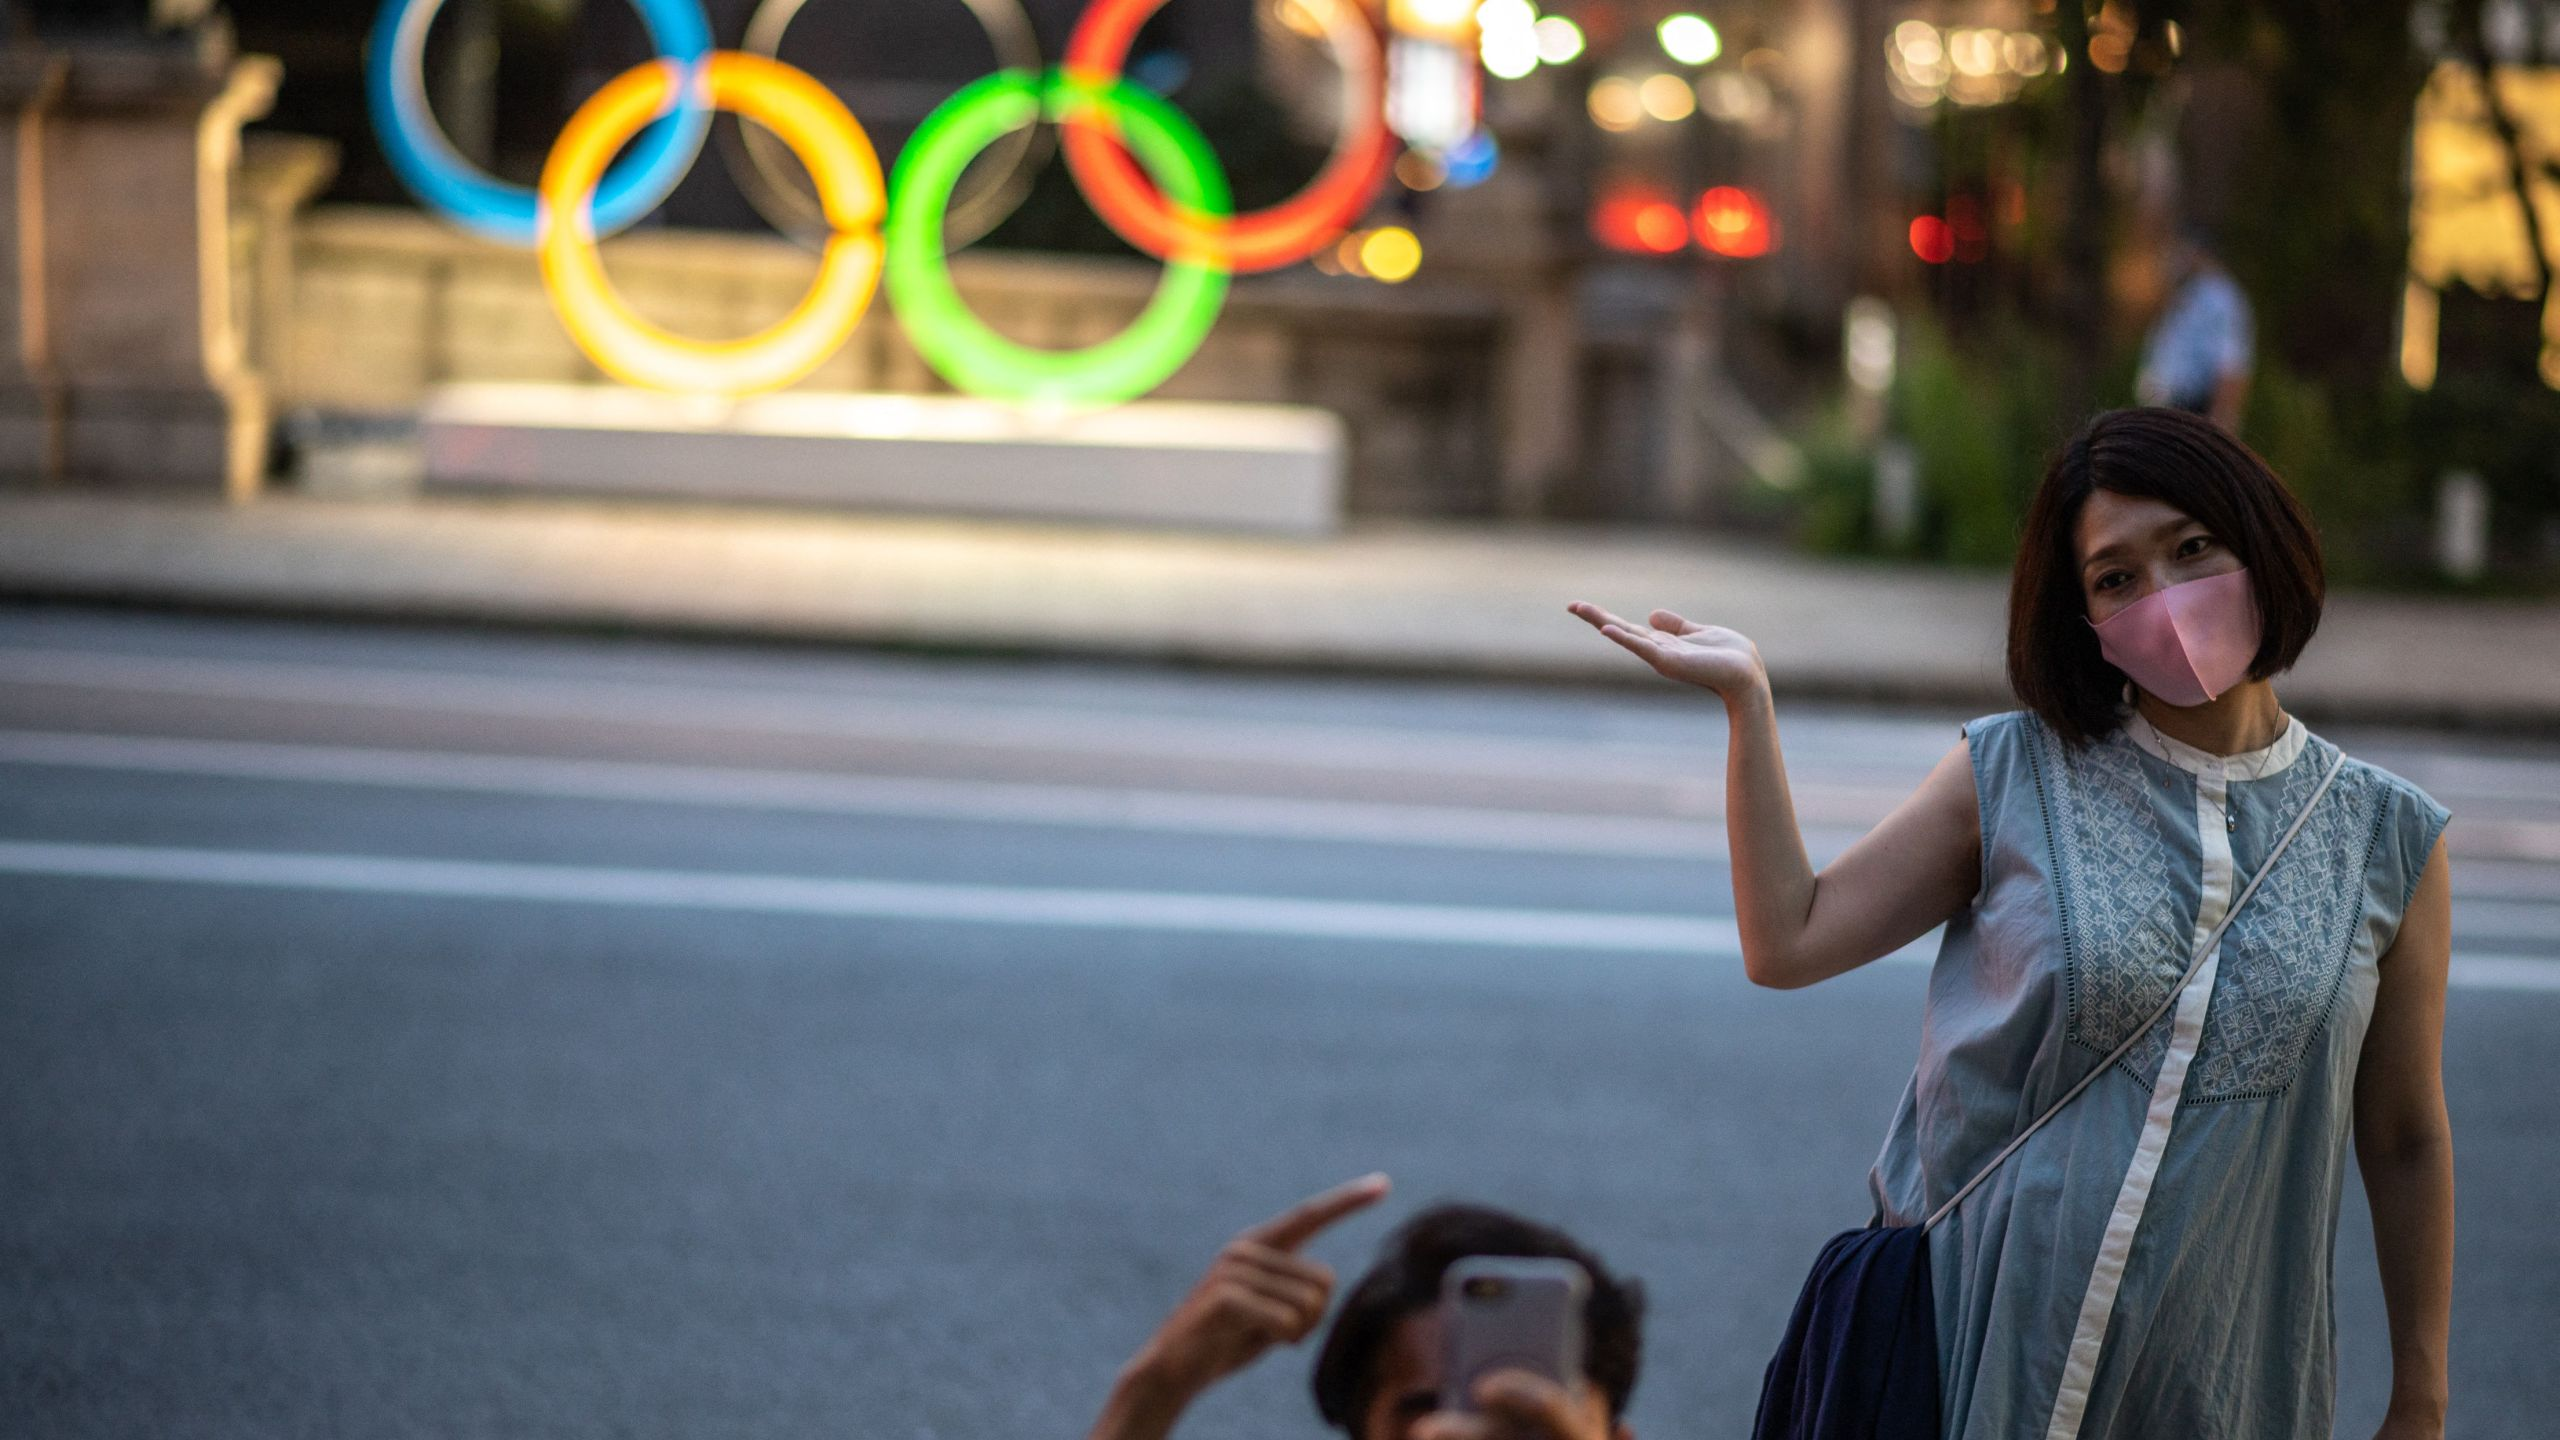 A couple pose in front of the Olympic Rings in Tokyo's Nihonbashi district on July 10, 2021. (Photo by Philip FONG / AFP) (Photo by PHILIP FONG/AFP via Getty Images)